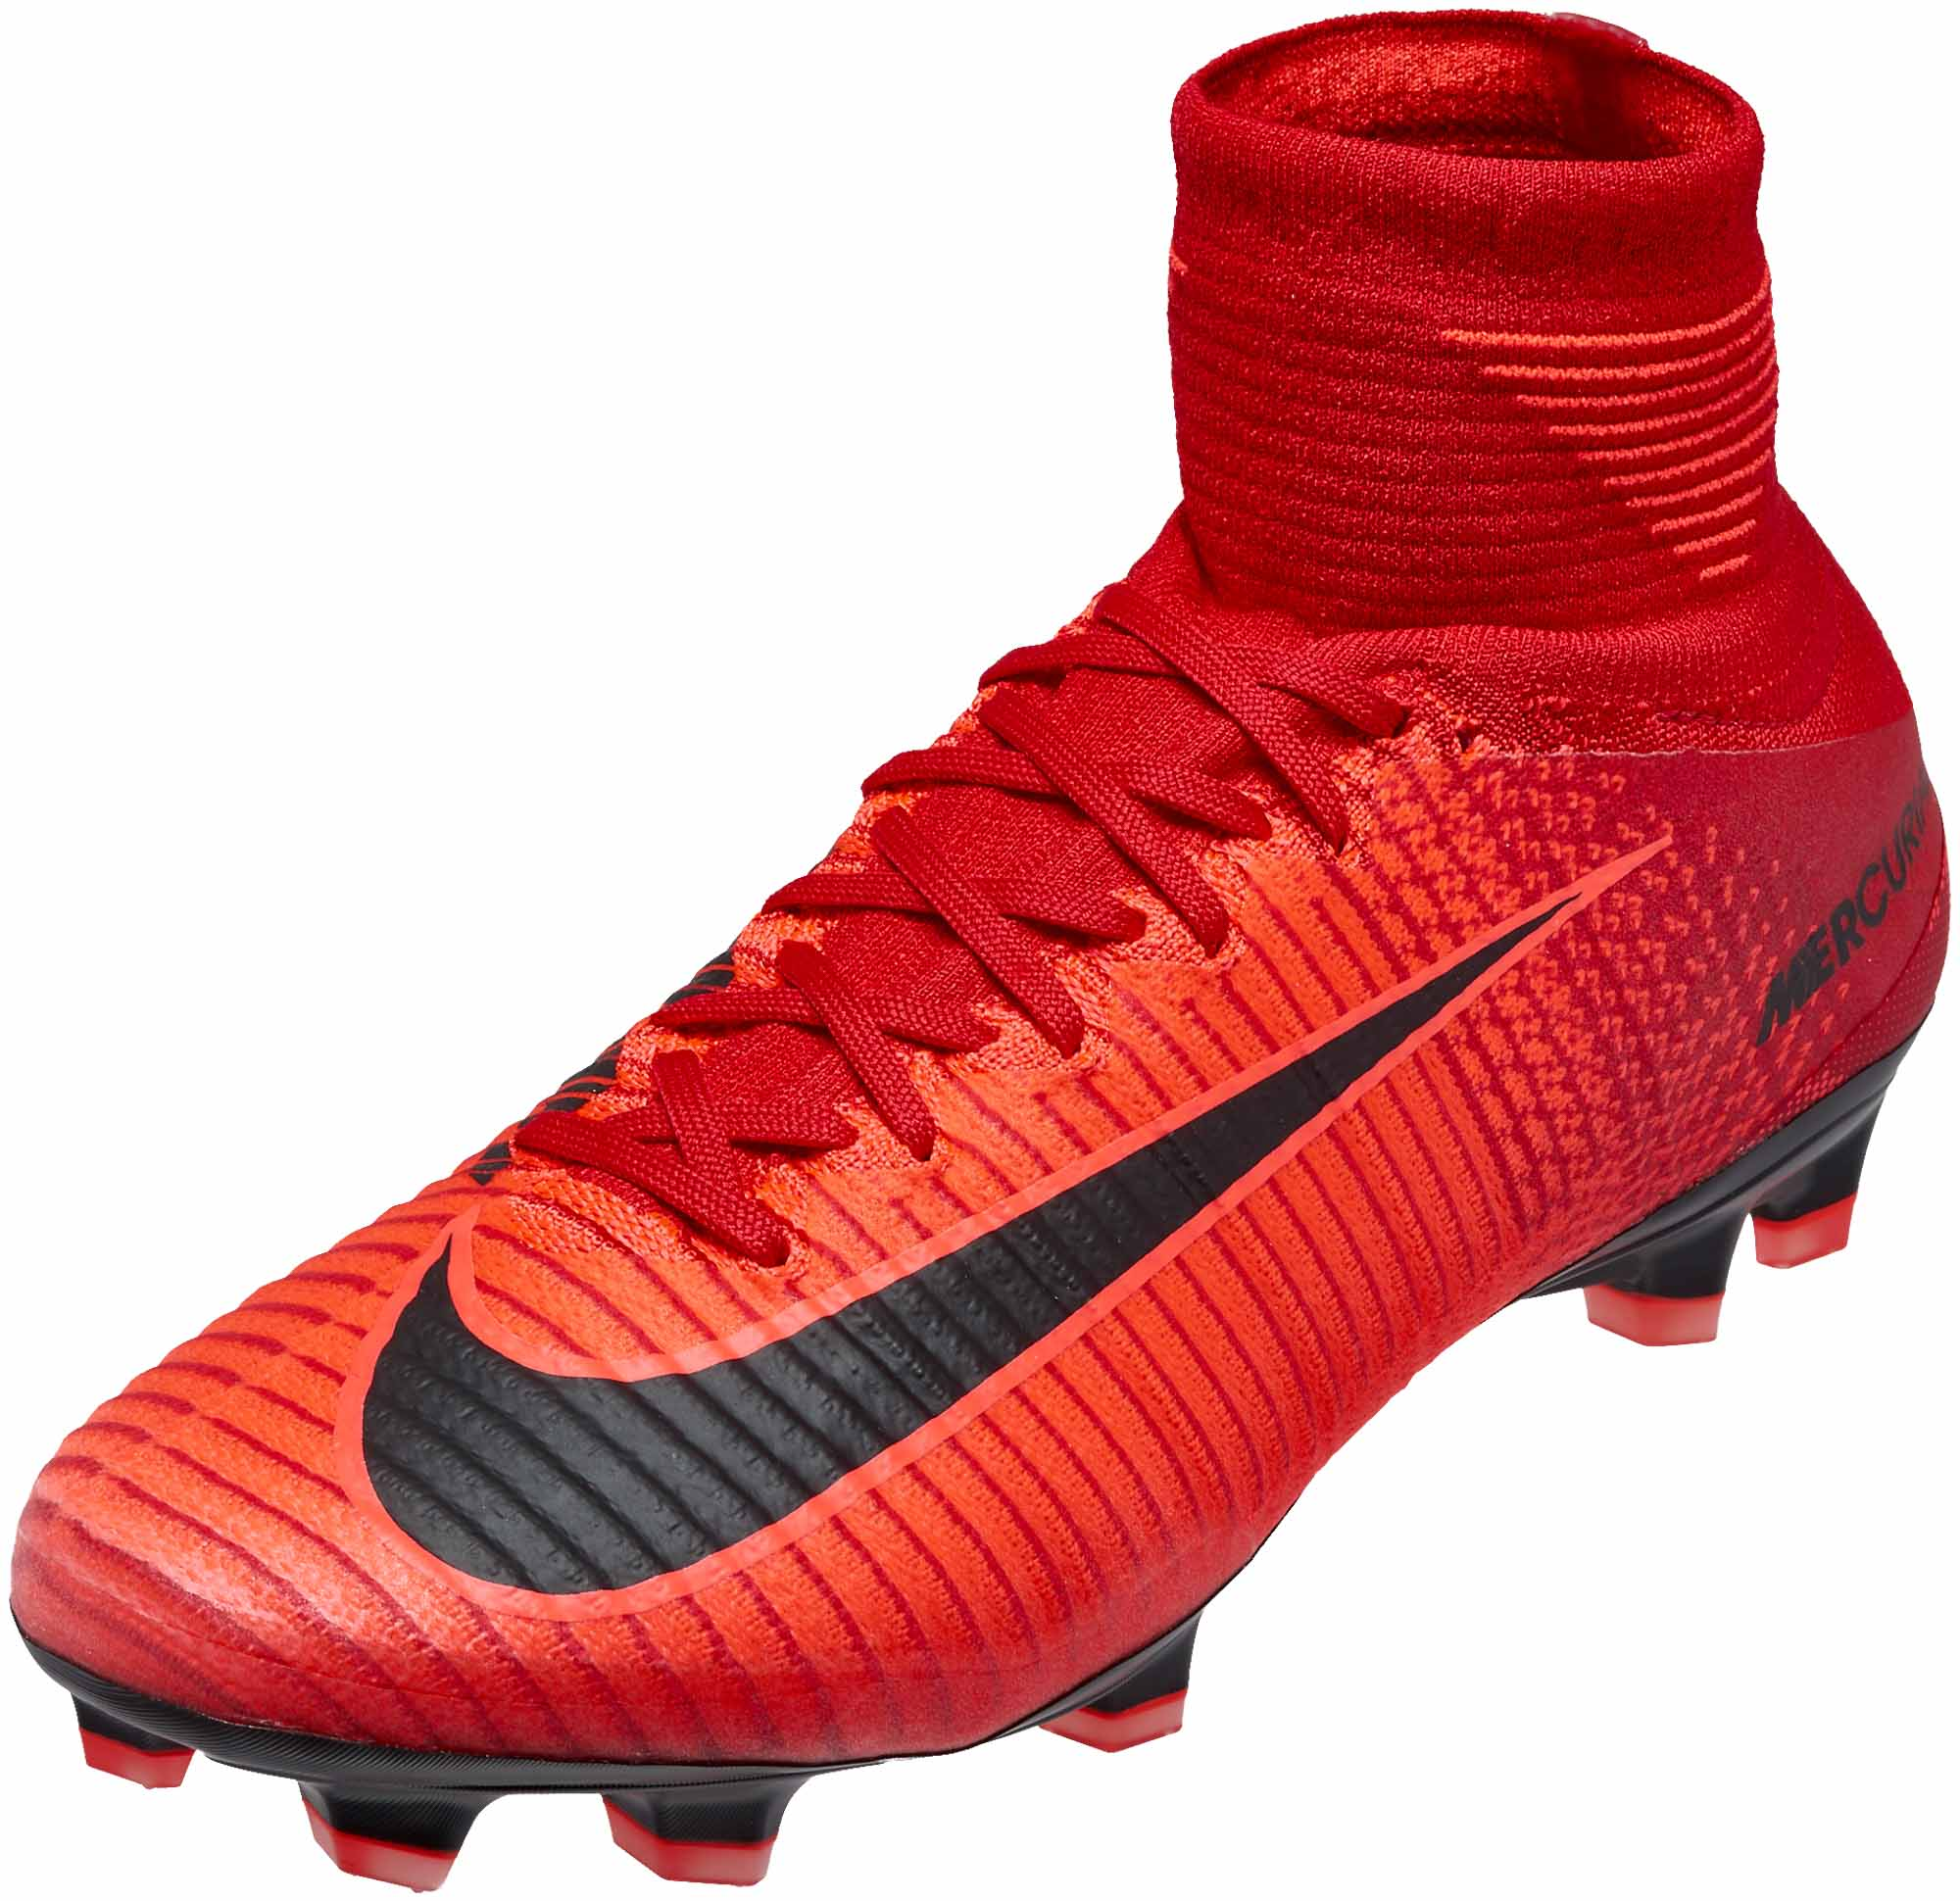 ff2483005e31 Nike Mercurial Superfly V FG – University Red/Black